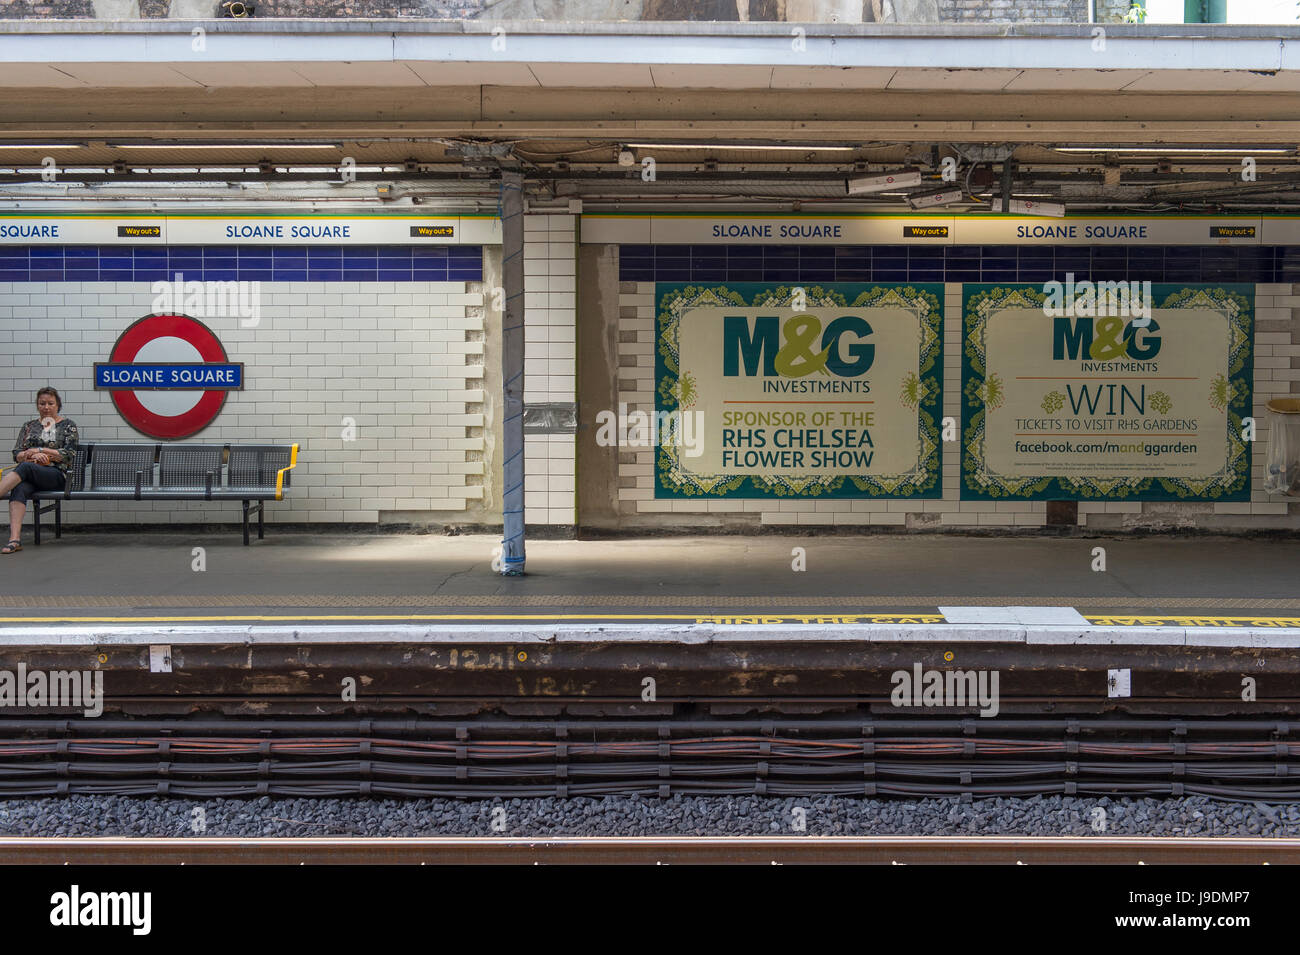 M&G Investments posters at Sloane Square underground station, sponsors of the RHS Chelsea Flower Show - Stock Image